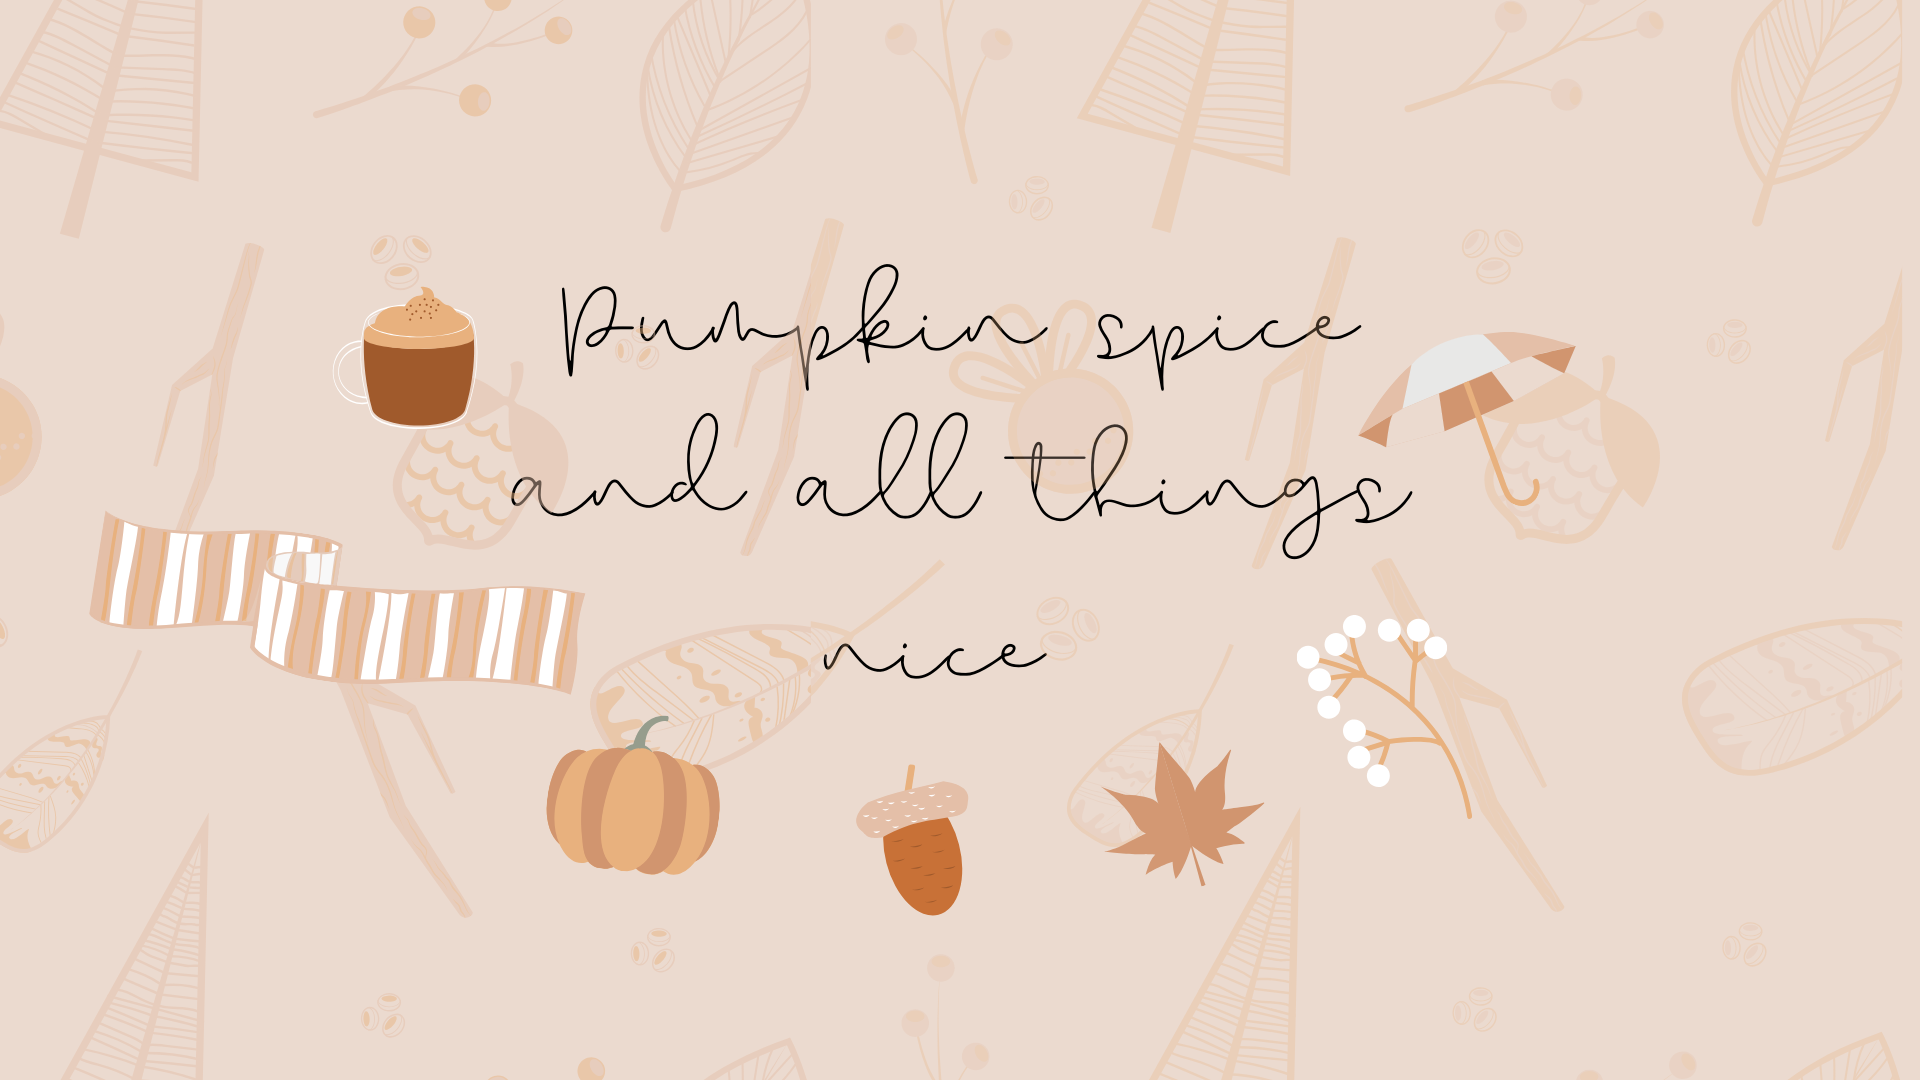 All Things Nice Desktop Wallpaper Fall Cute Desktop Wallpaper Computer Wallpaper Desktop Wallpapers